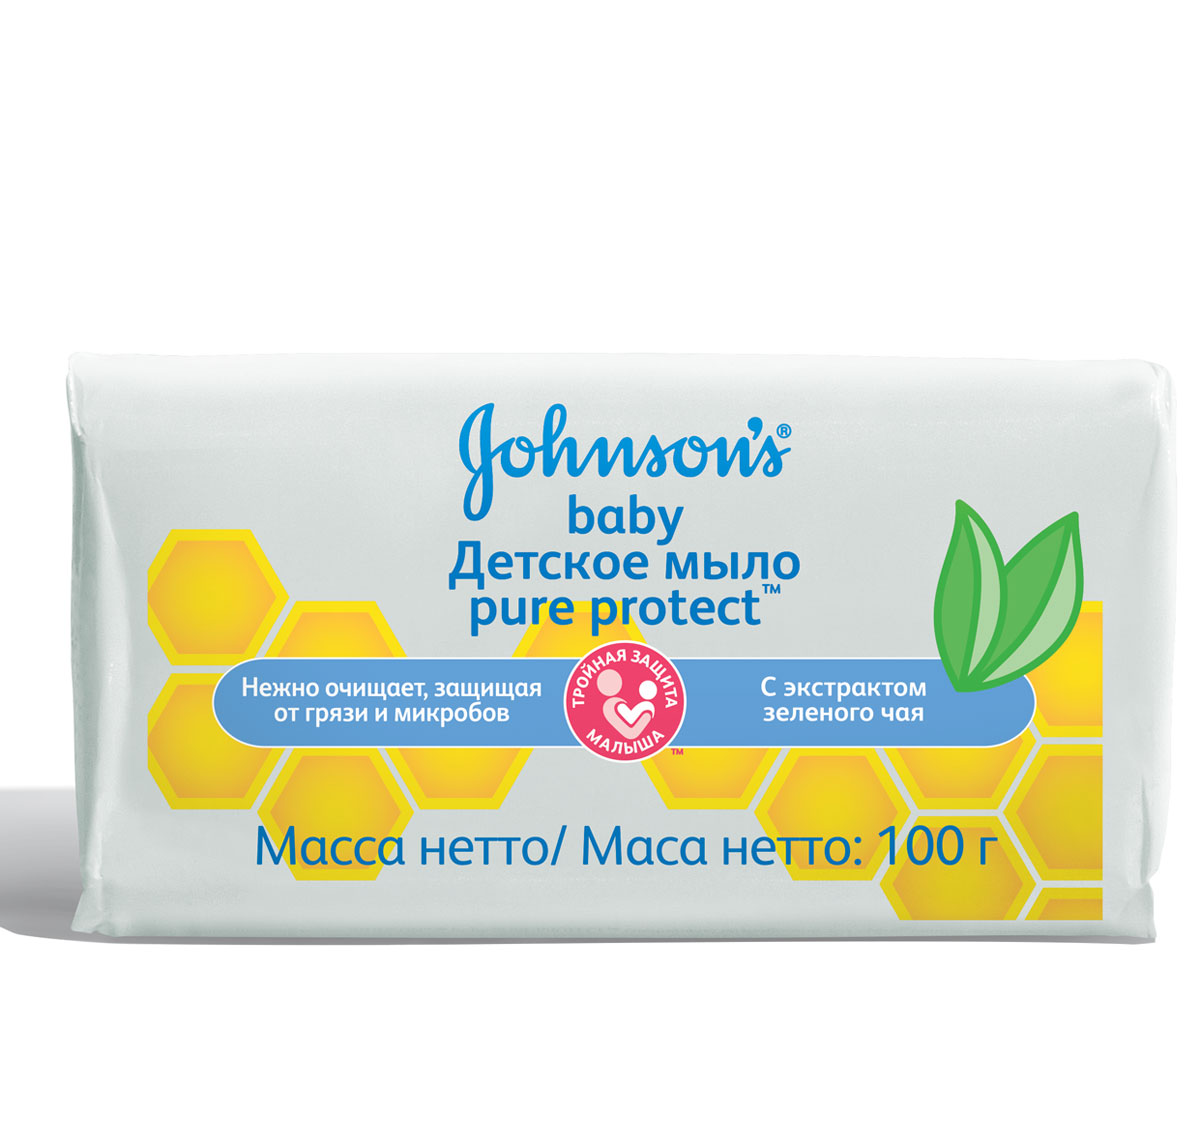 Johnson's baby Pure Protect Детское мыло 100 г